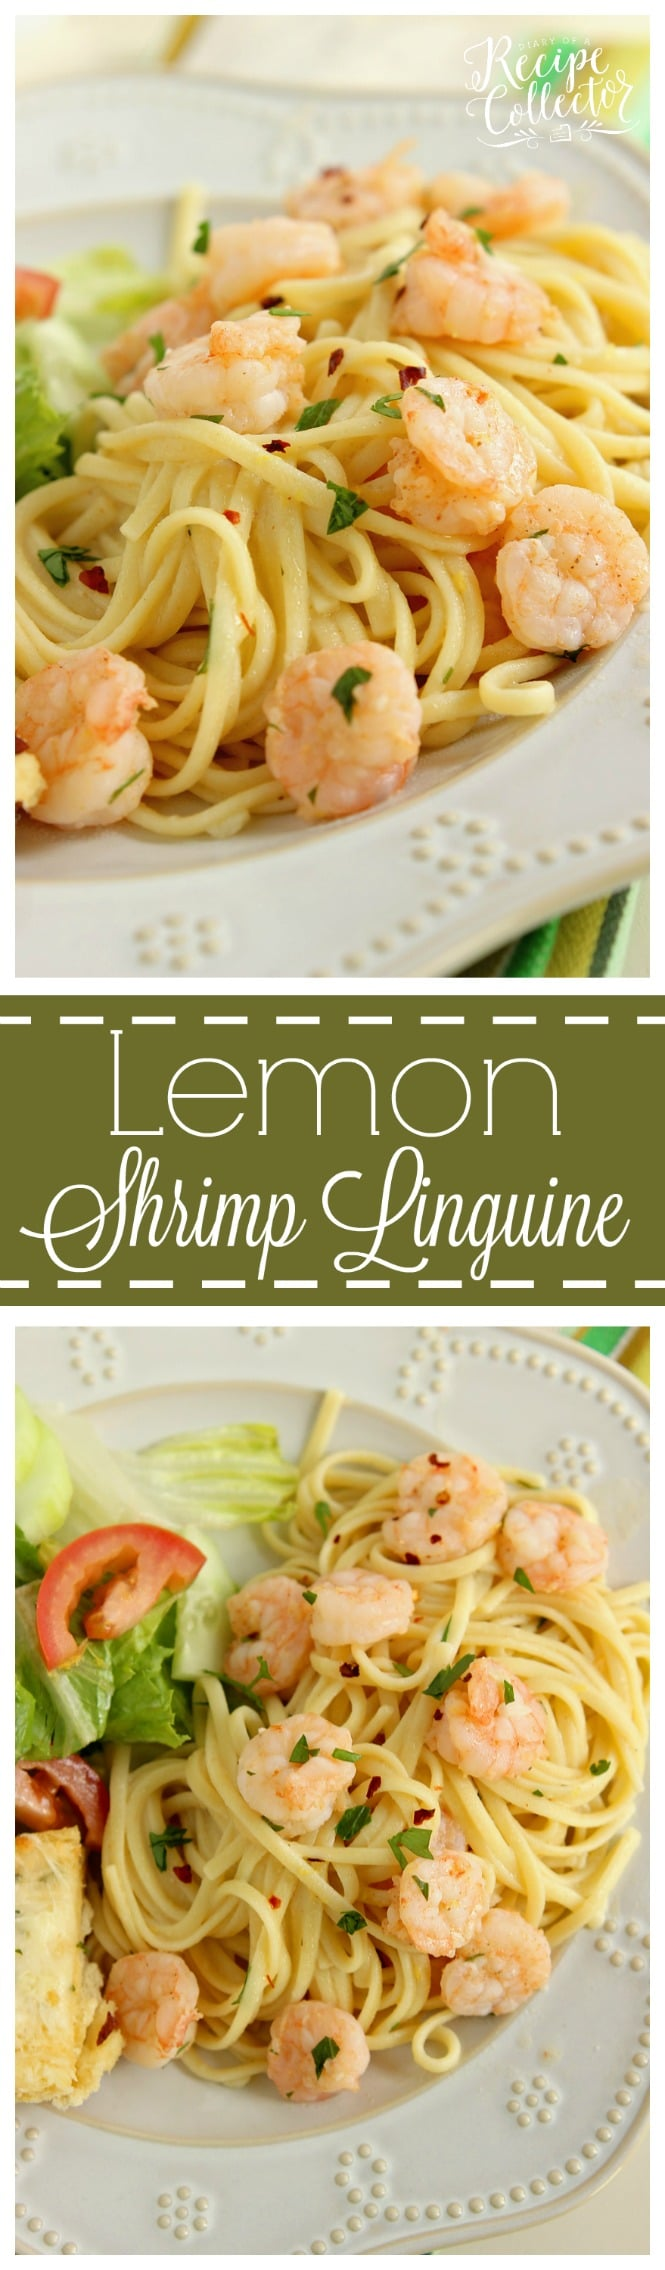 Lemon Shrimp Linguine Diary Of A Recipe Collector